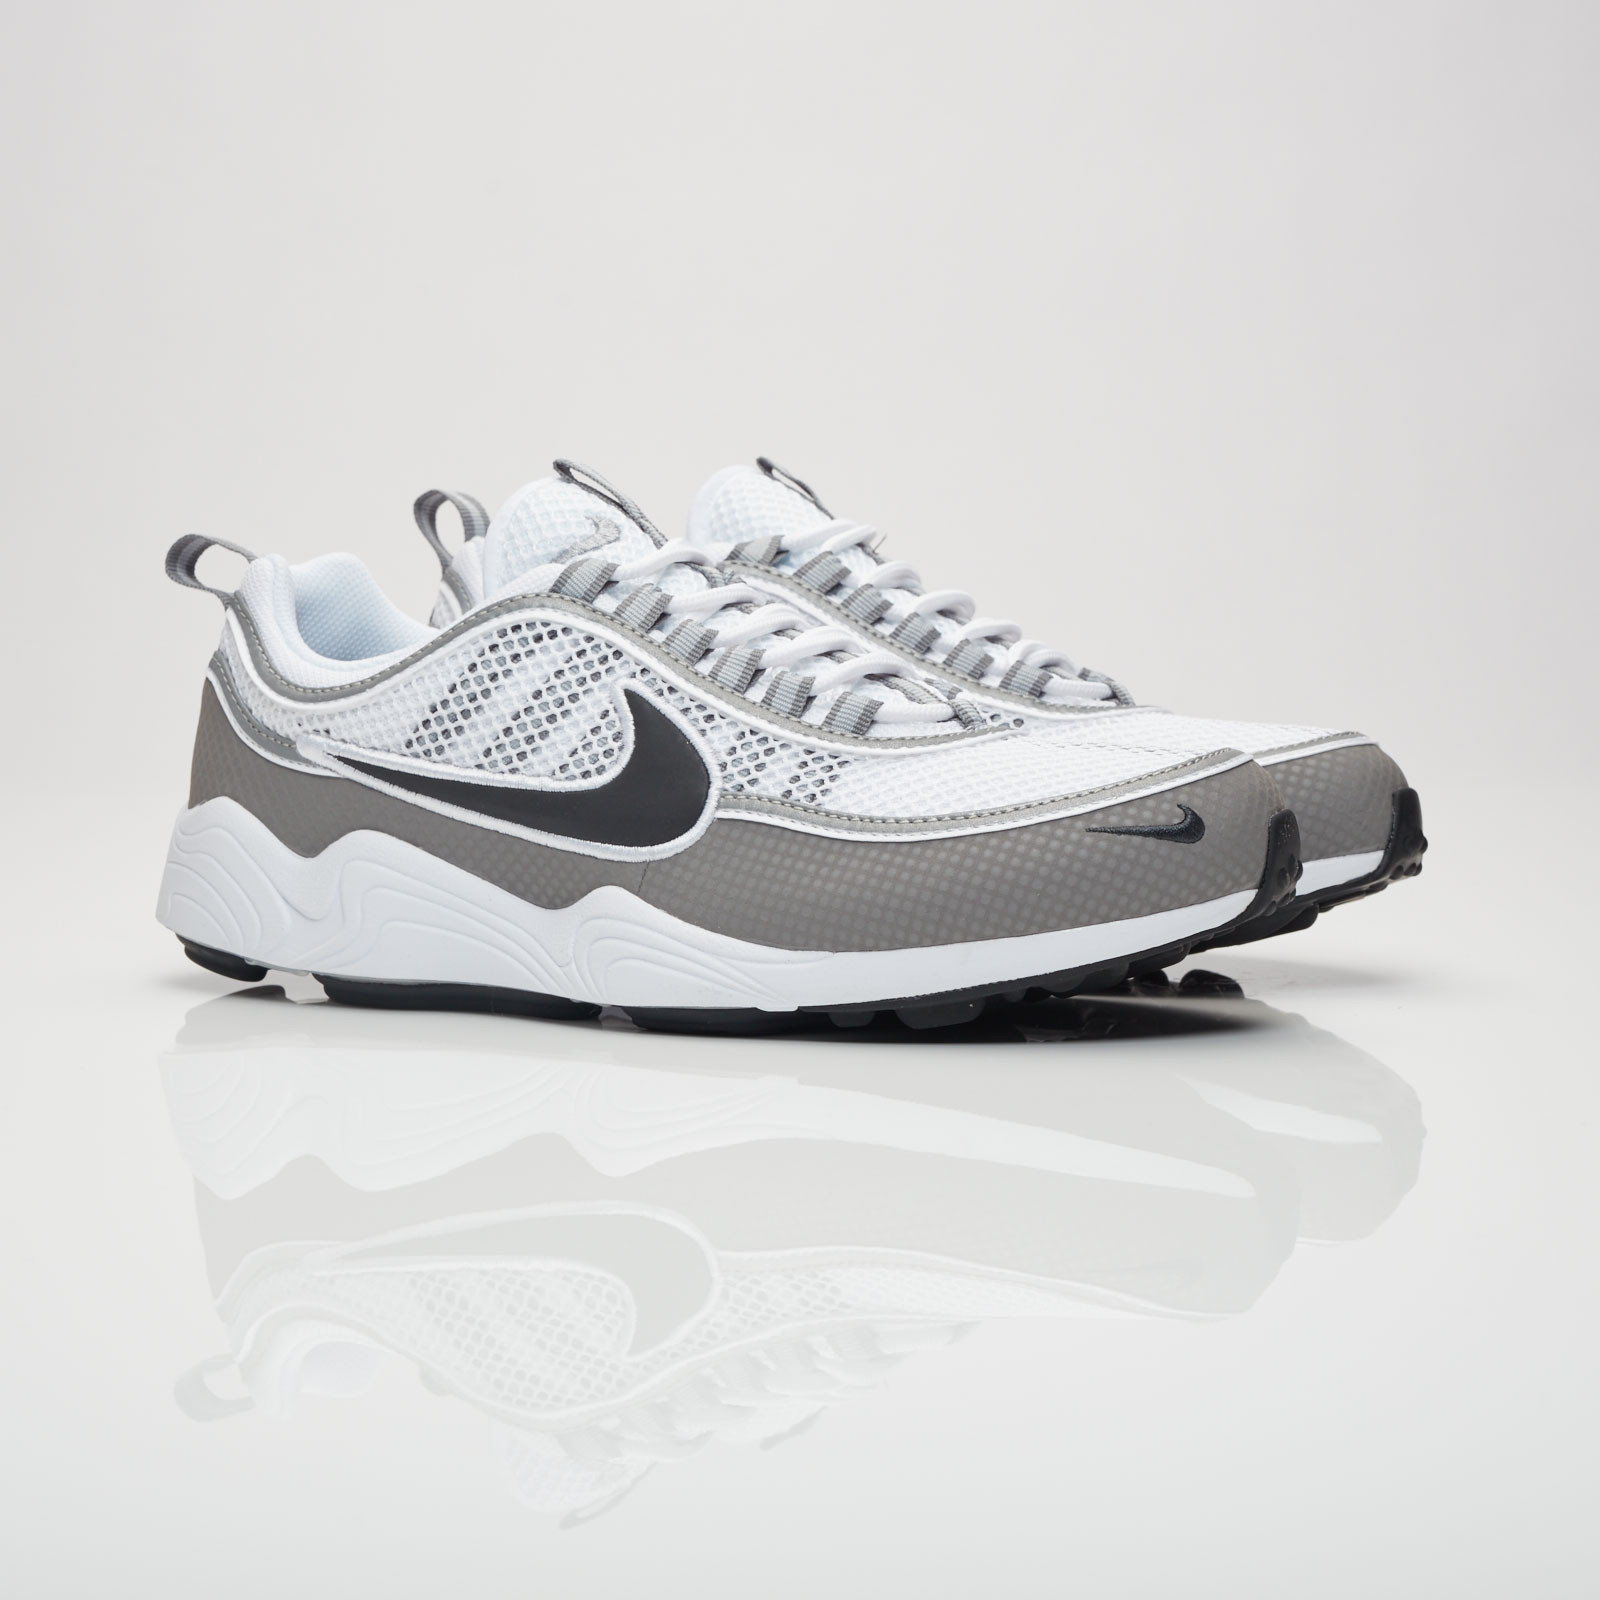 c4150b8e50a20 ... white black light ash uz28jjc1 102a2 d97df  usa nike sportswear air  zoom spiridon 16 4d550 07079